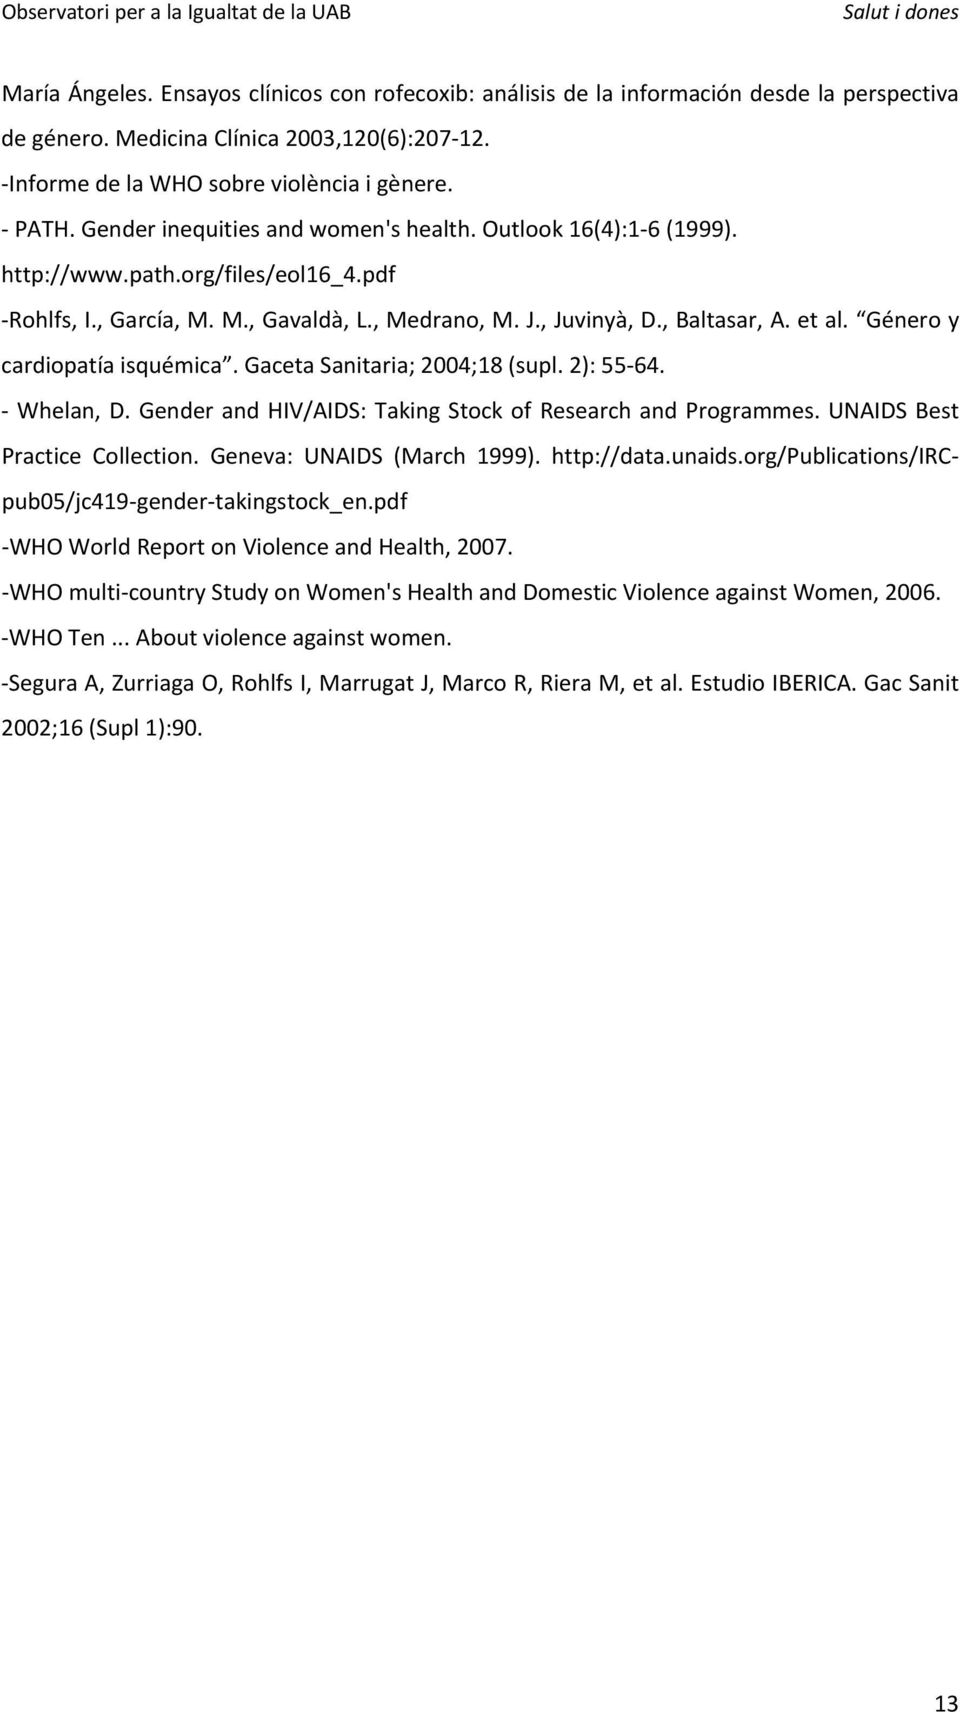 Género y cardiopatía isquémica. Gaceta Sanitaria; 2004;18 (supl. 2): 55 64. Whelan, D. Gender and HIV/AIDS: Taking Stock of Research and Programmes. UNAIDS Best Practice Collection.